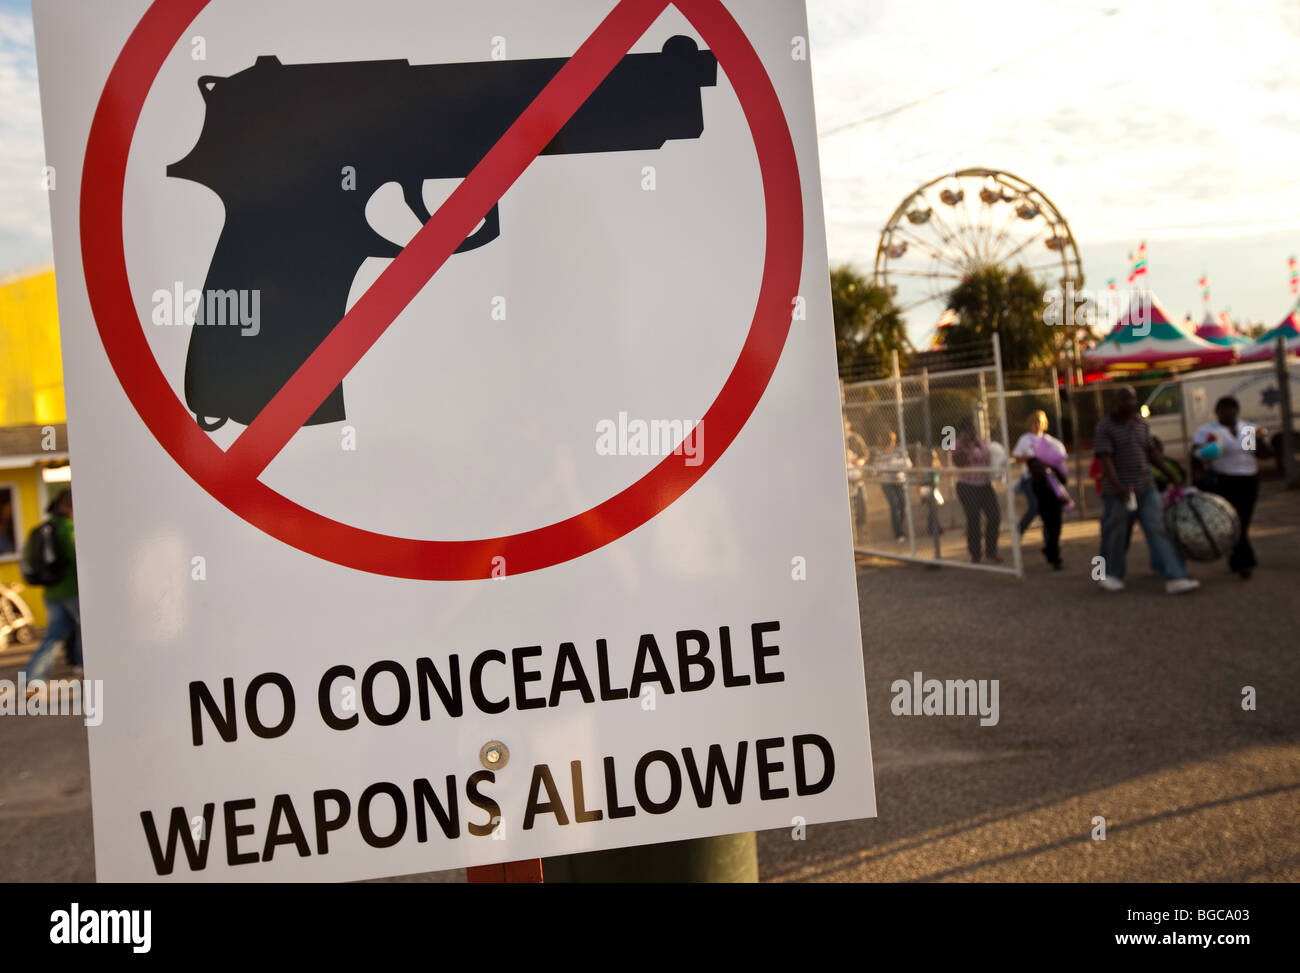 A sign forbidding concealed weapons at the South Carolina Coastal Fair in Charleston, SC. - Stock Image